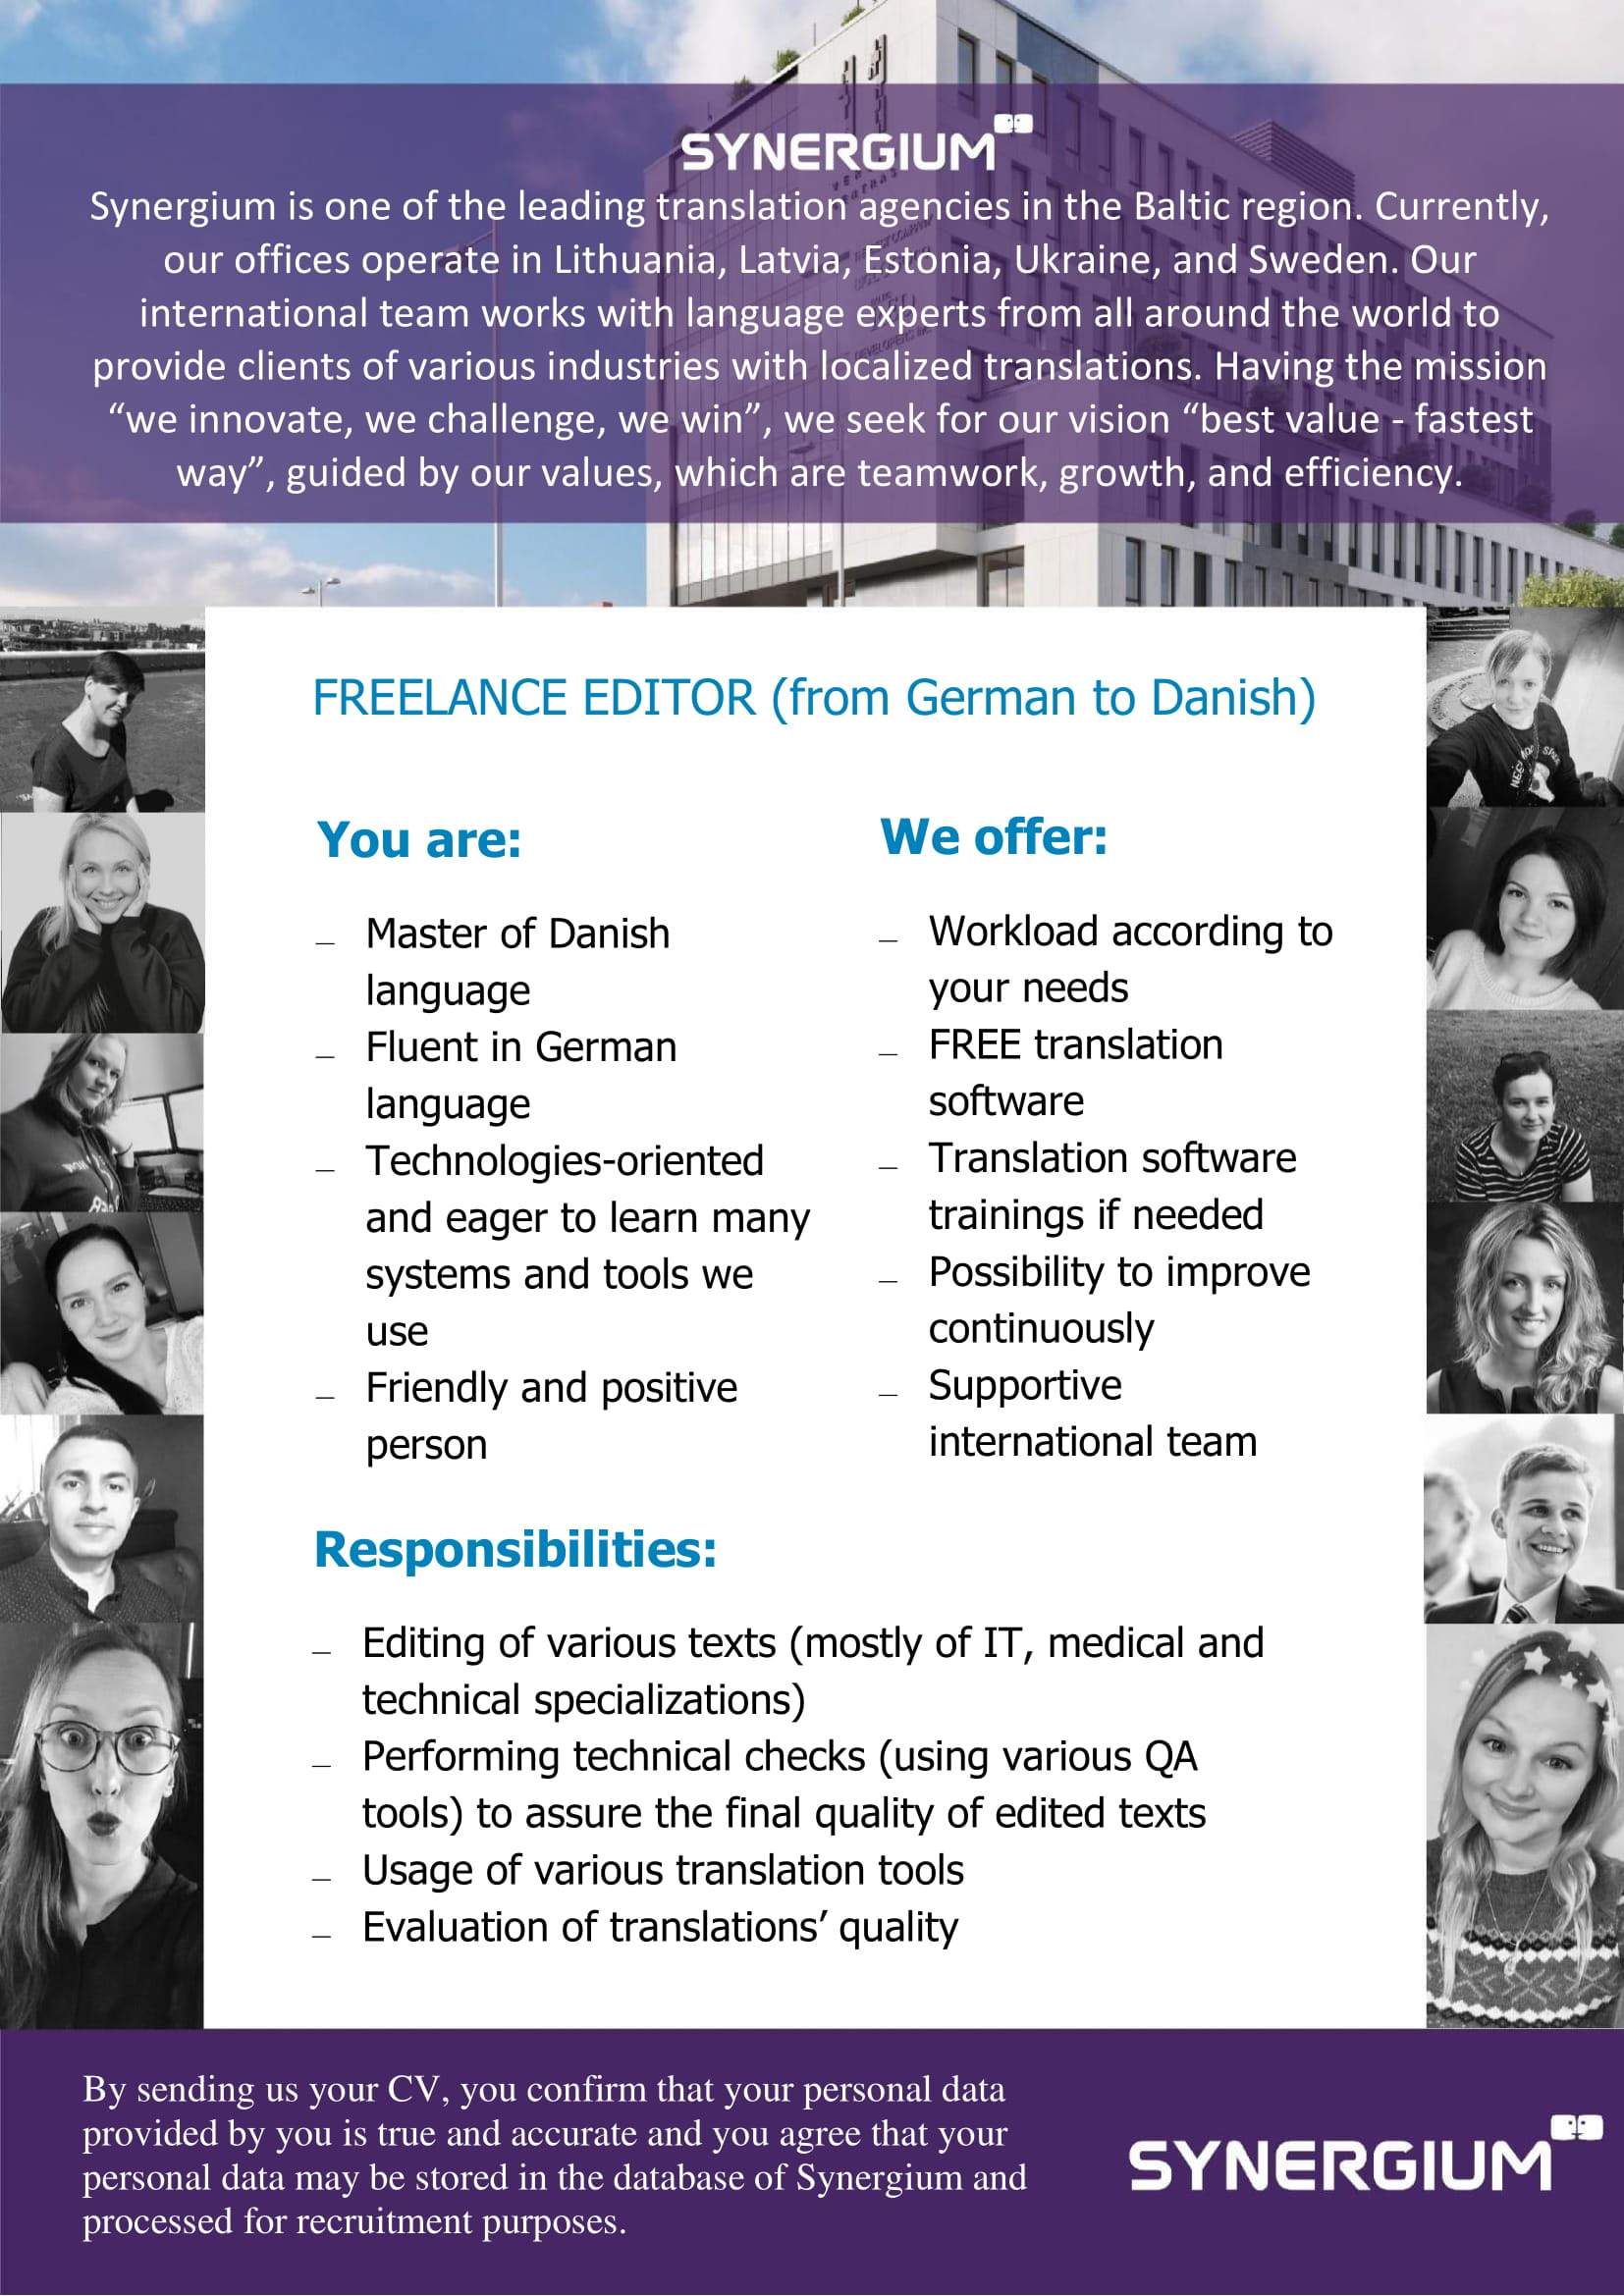 freelance editor from german to danish job advertisement synergium